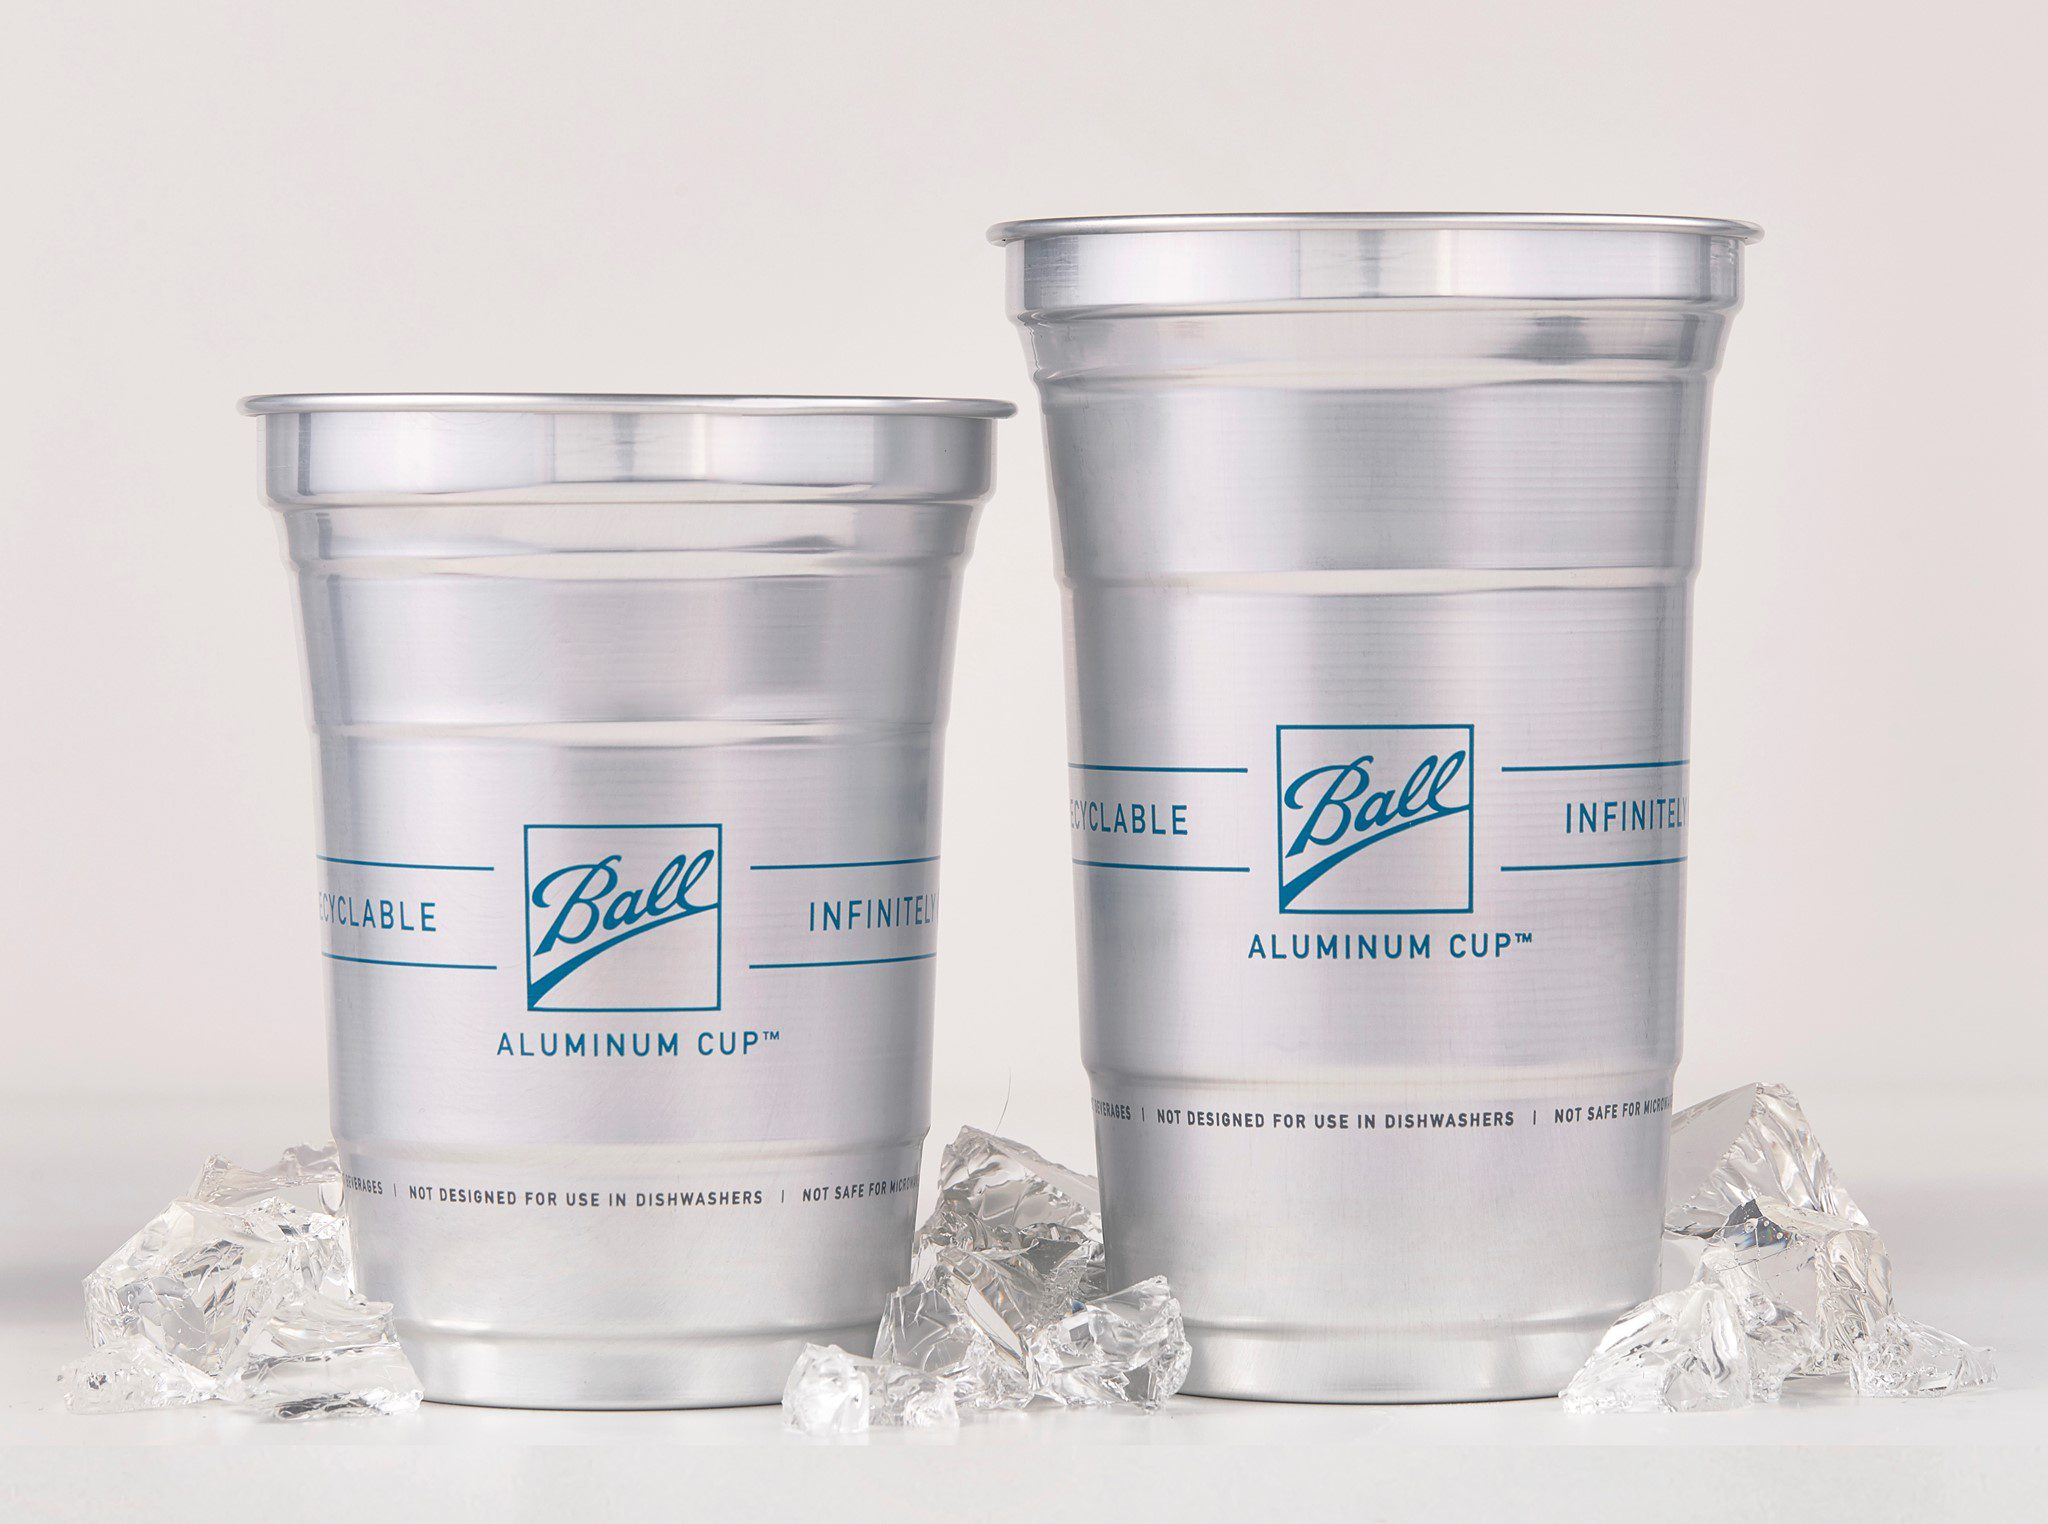 recyclable aluminum cups